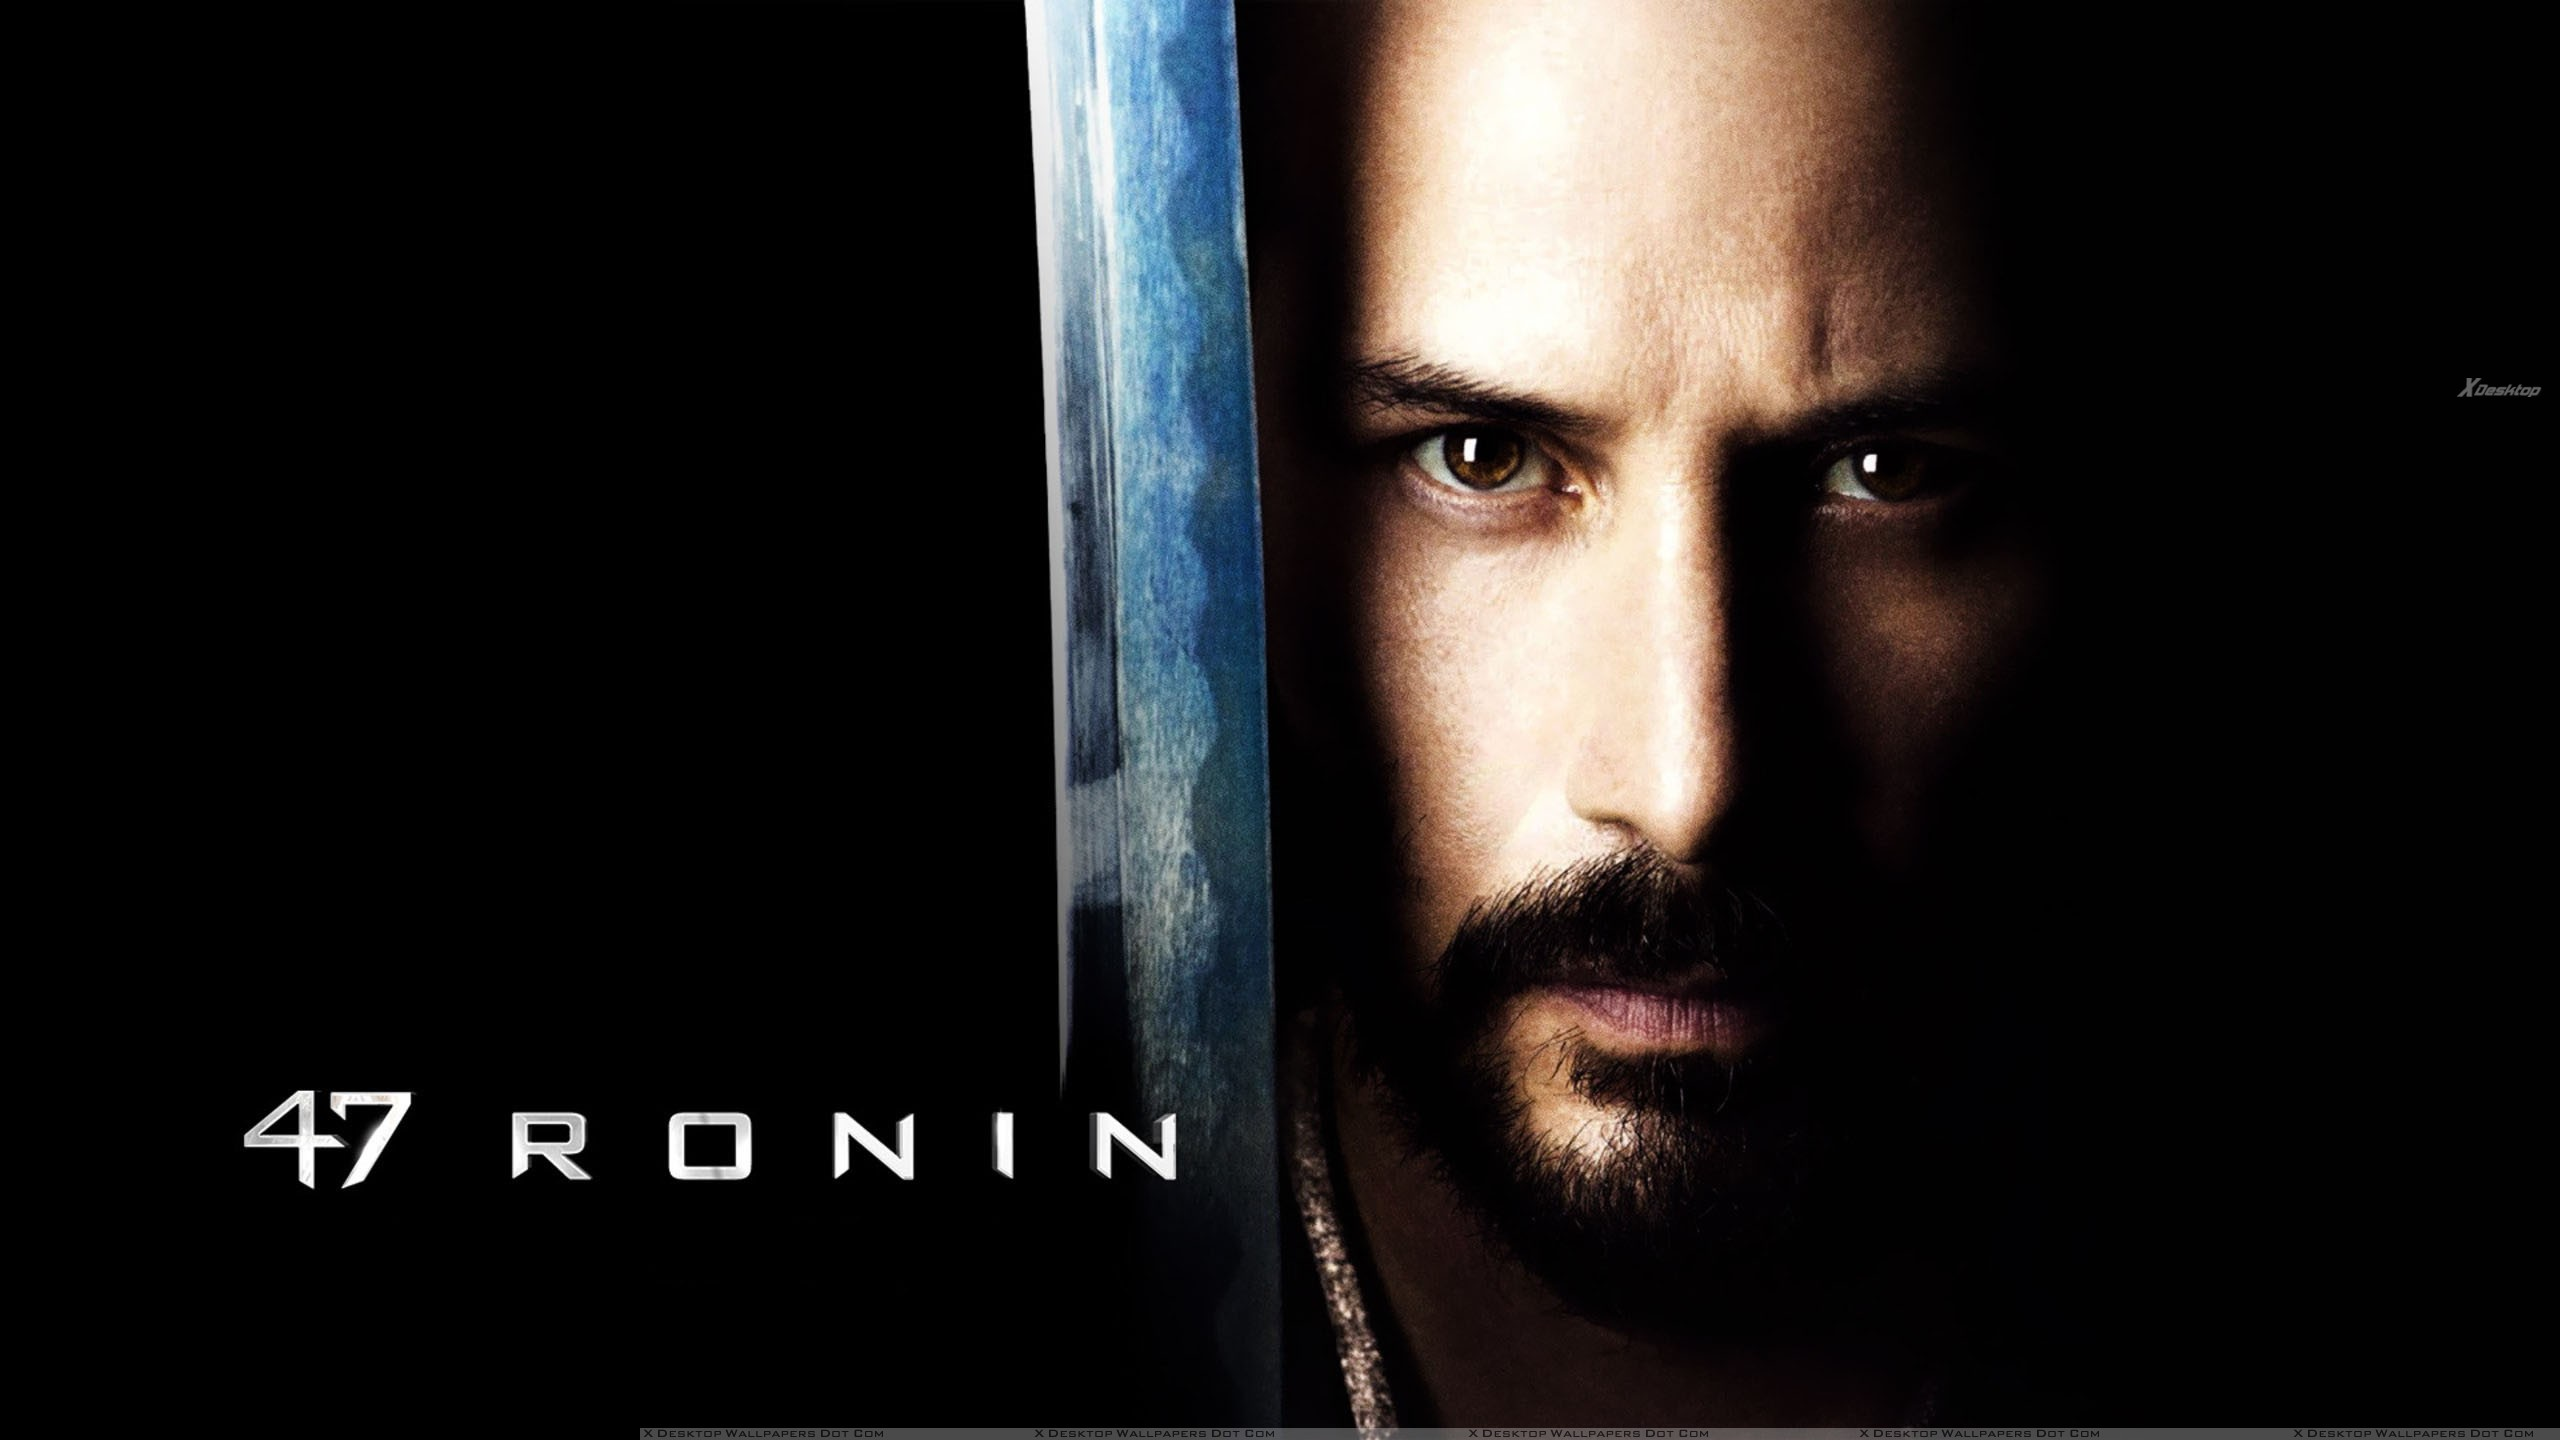 keanu reeves with his sword brown eyes in 47 ronin wallpaper